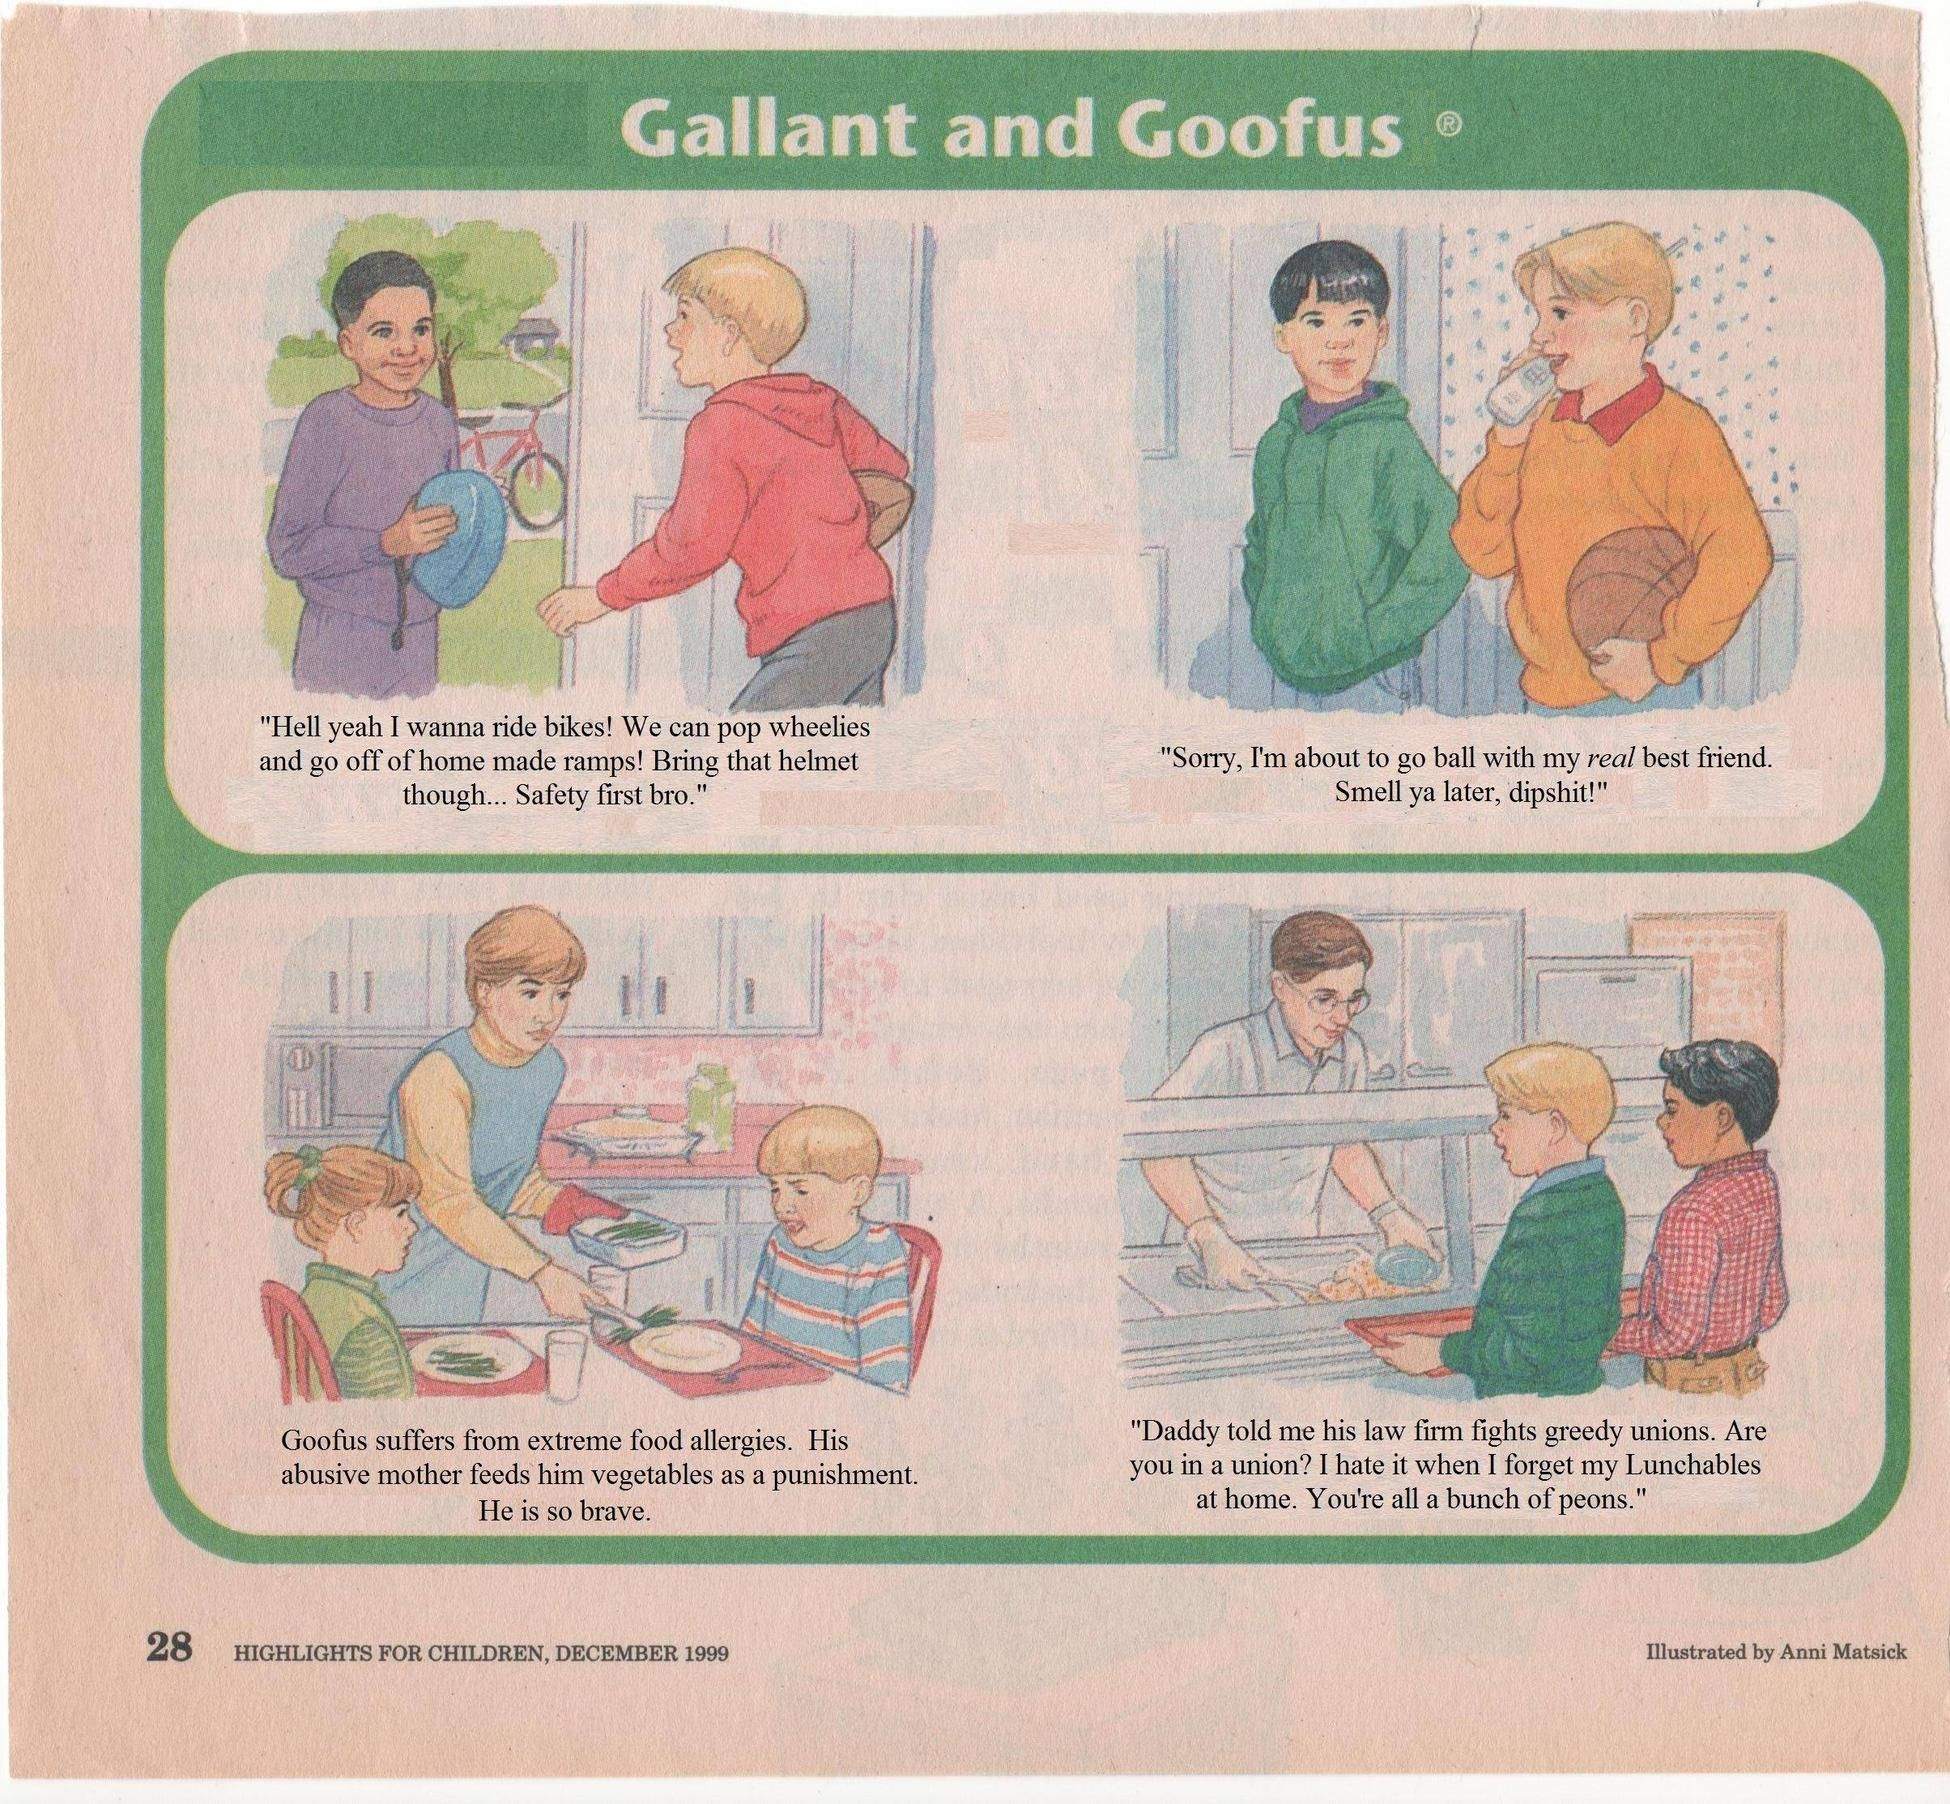 antithesis of goofus in highlights for children Antithesis of goofus in highlights for children argumentative essay formats apple ethical issues essay best book mba essays barack obama's college thesis at.